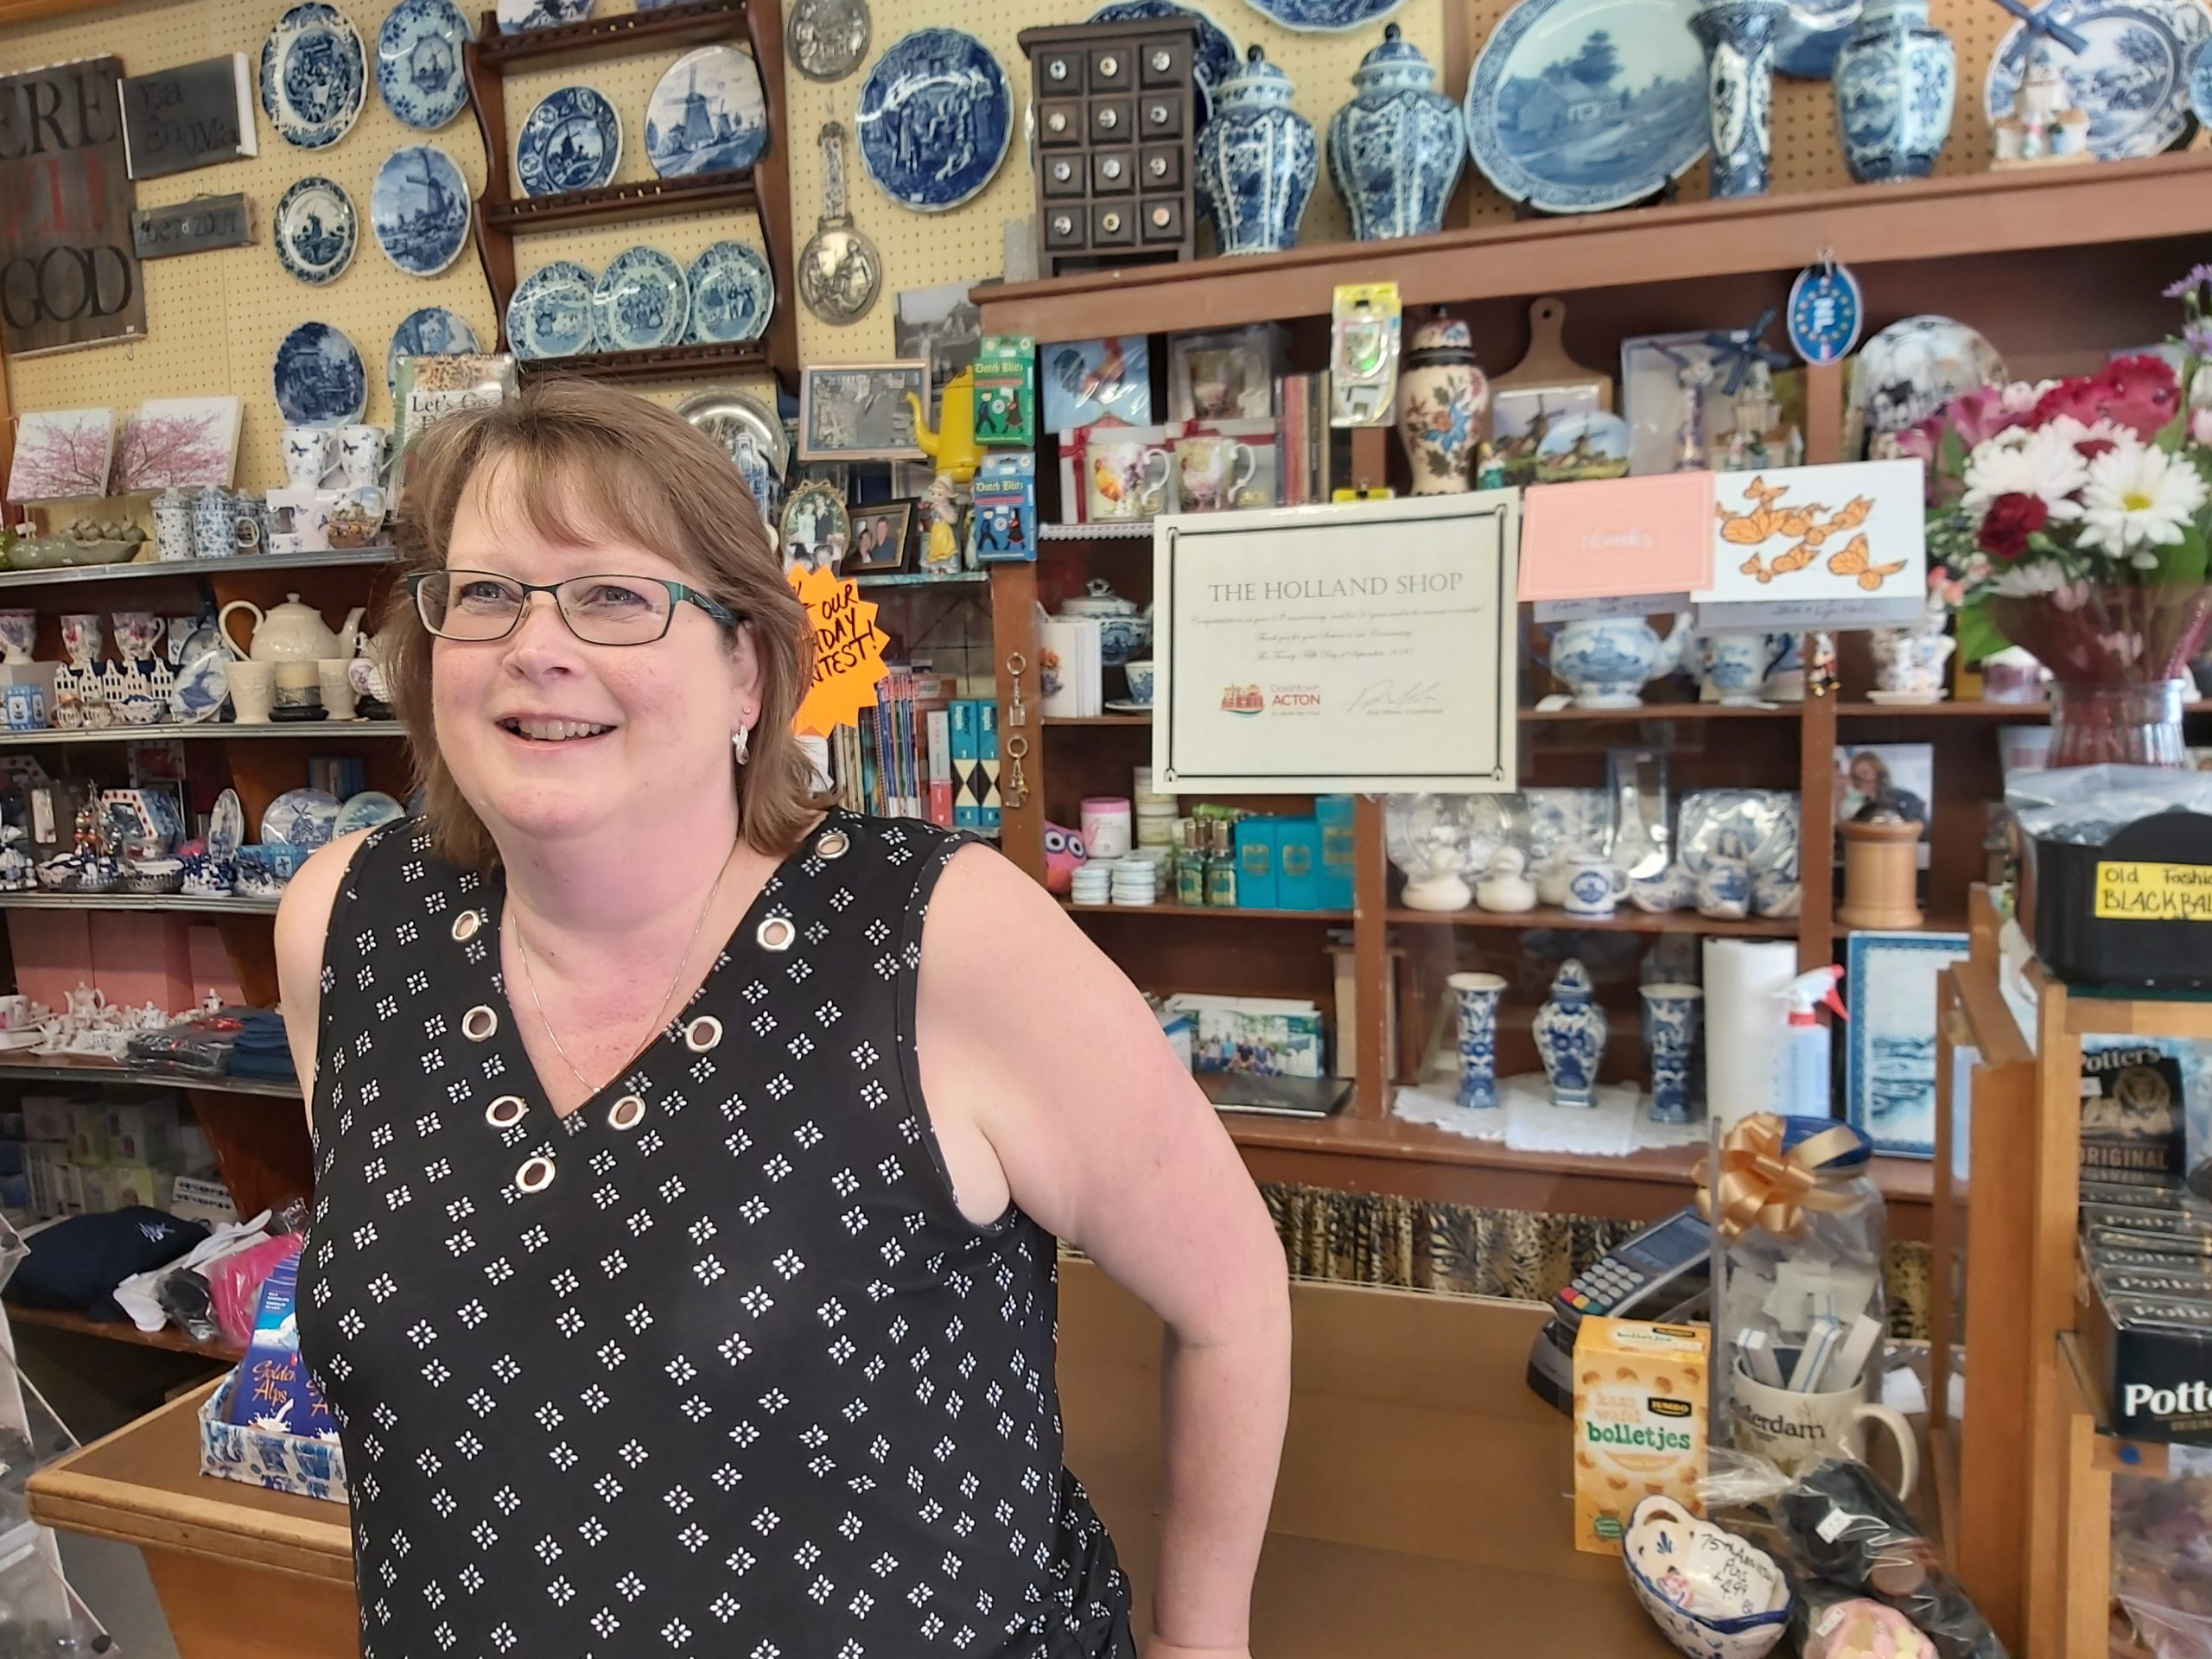 Meet the Business Owner – The Holland Shop